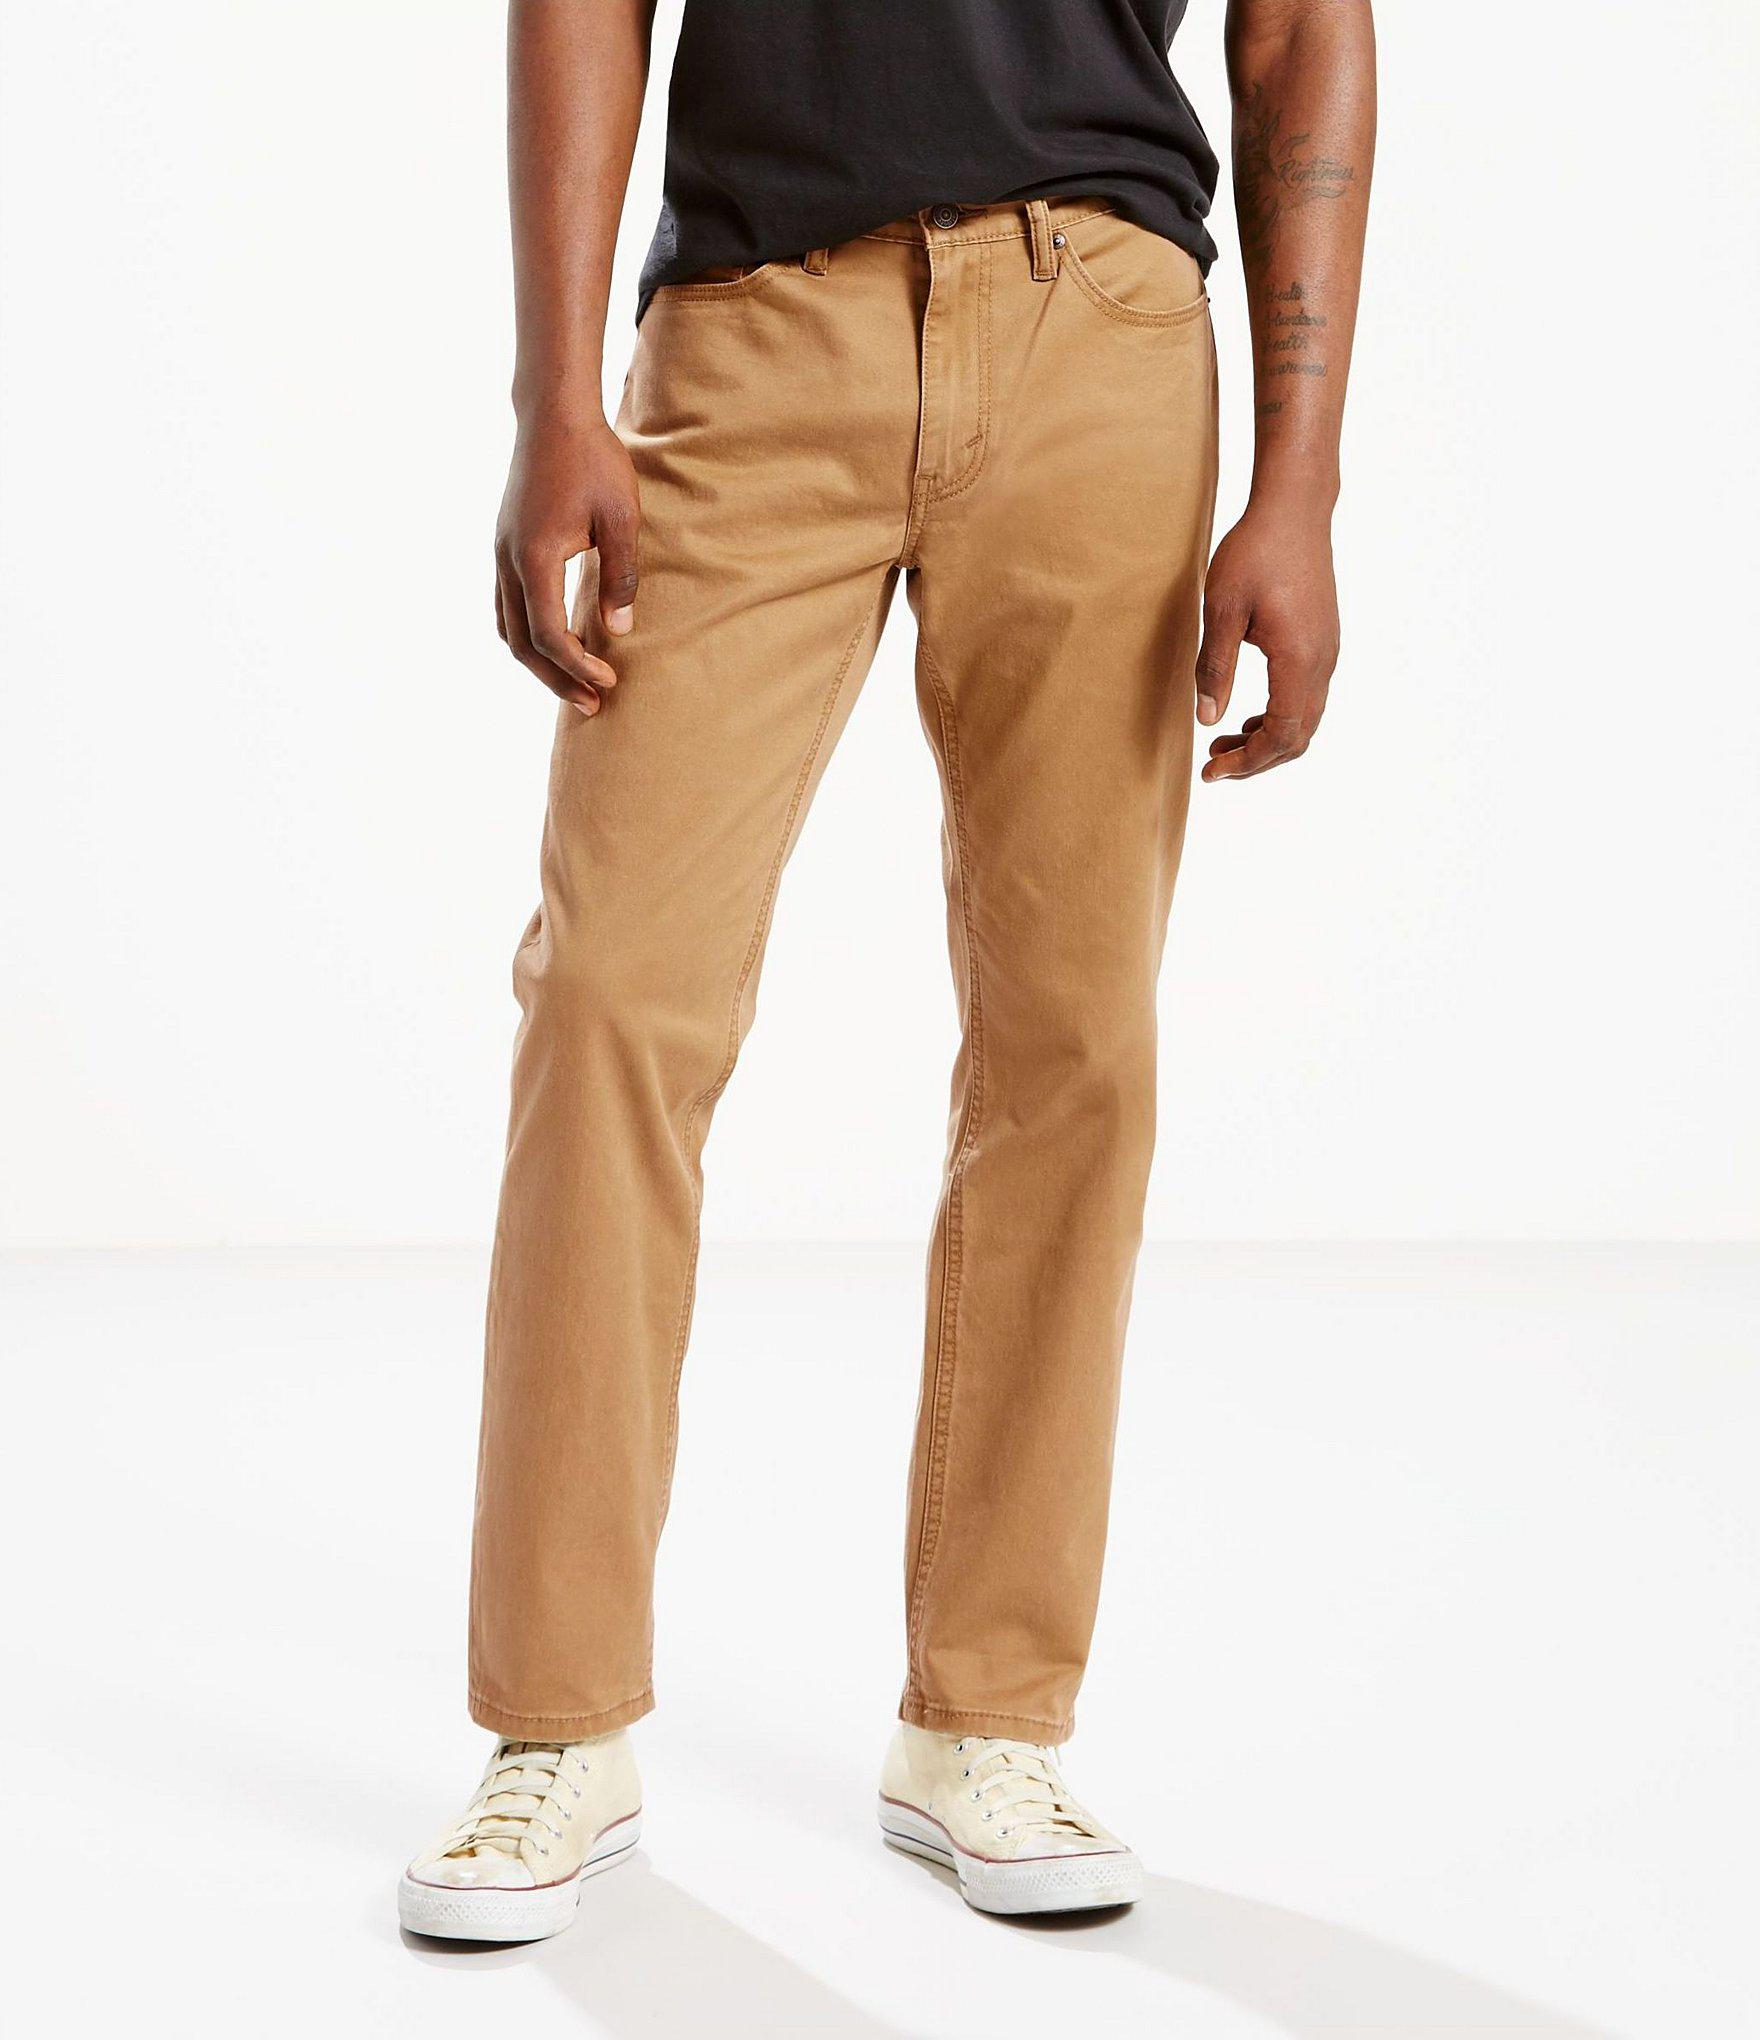 7e7e464f Levi's 541 Athletic-fit Stretch Twill Flat Front Pants in Brown for ...